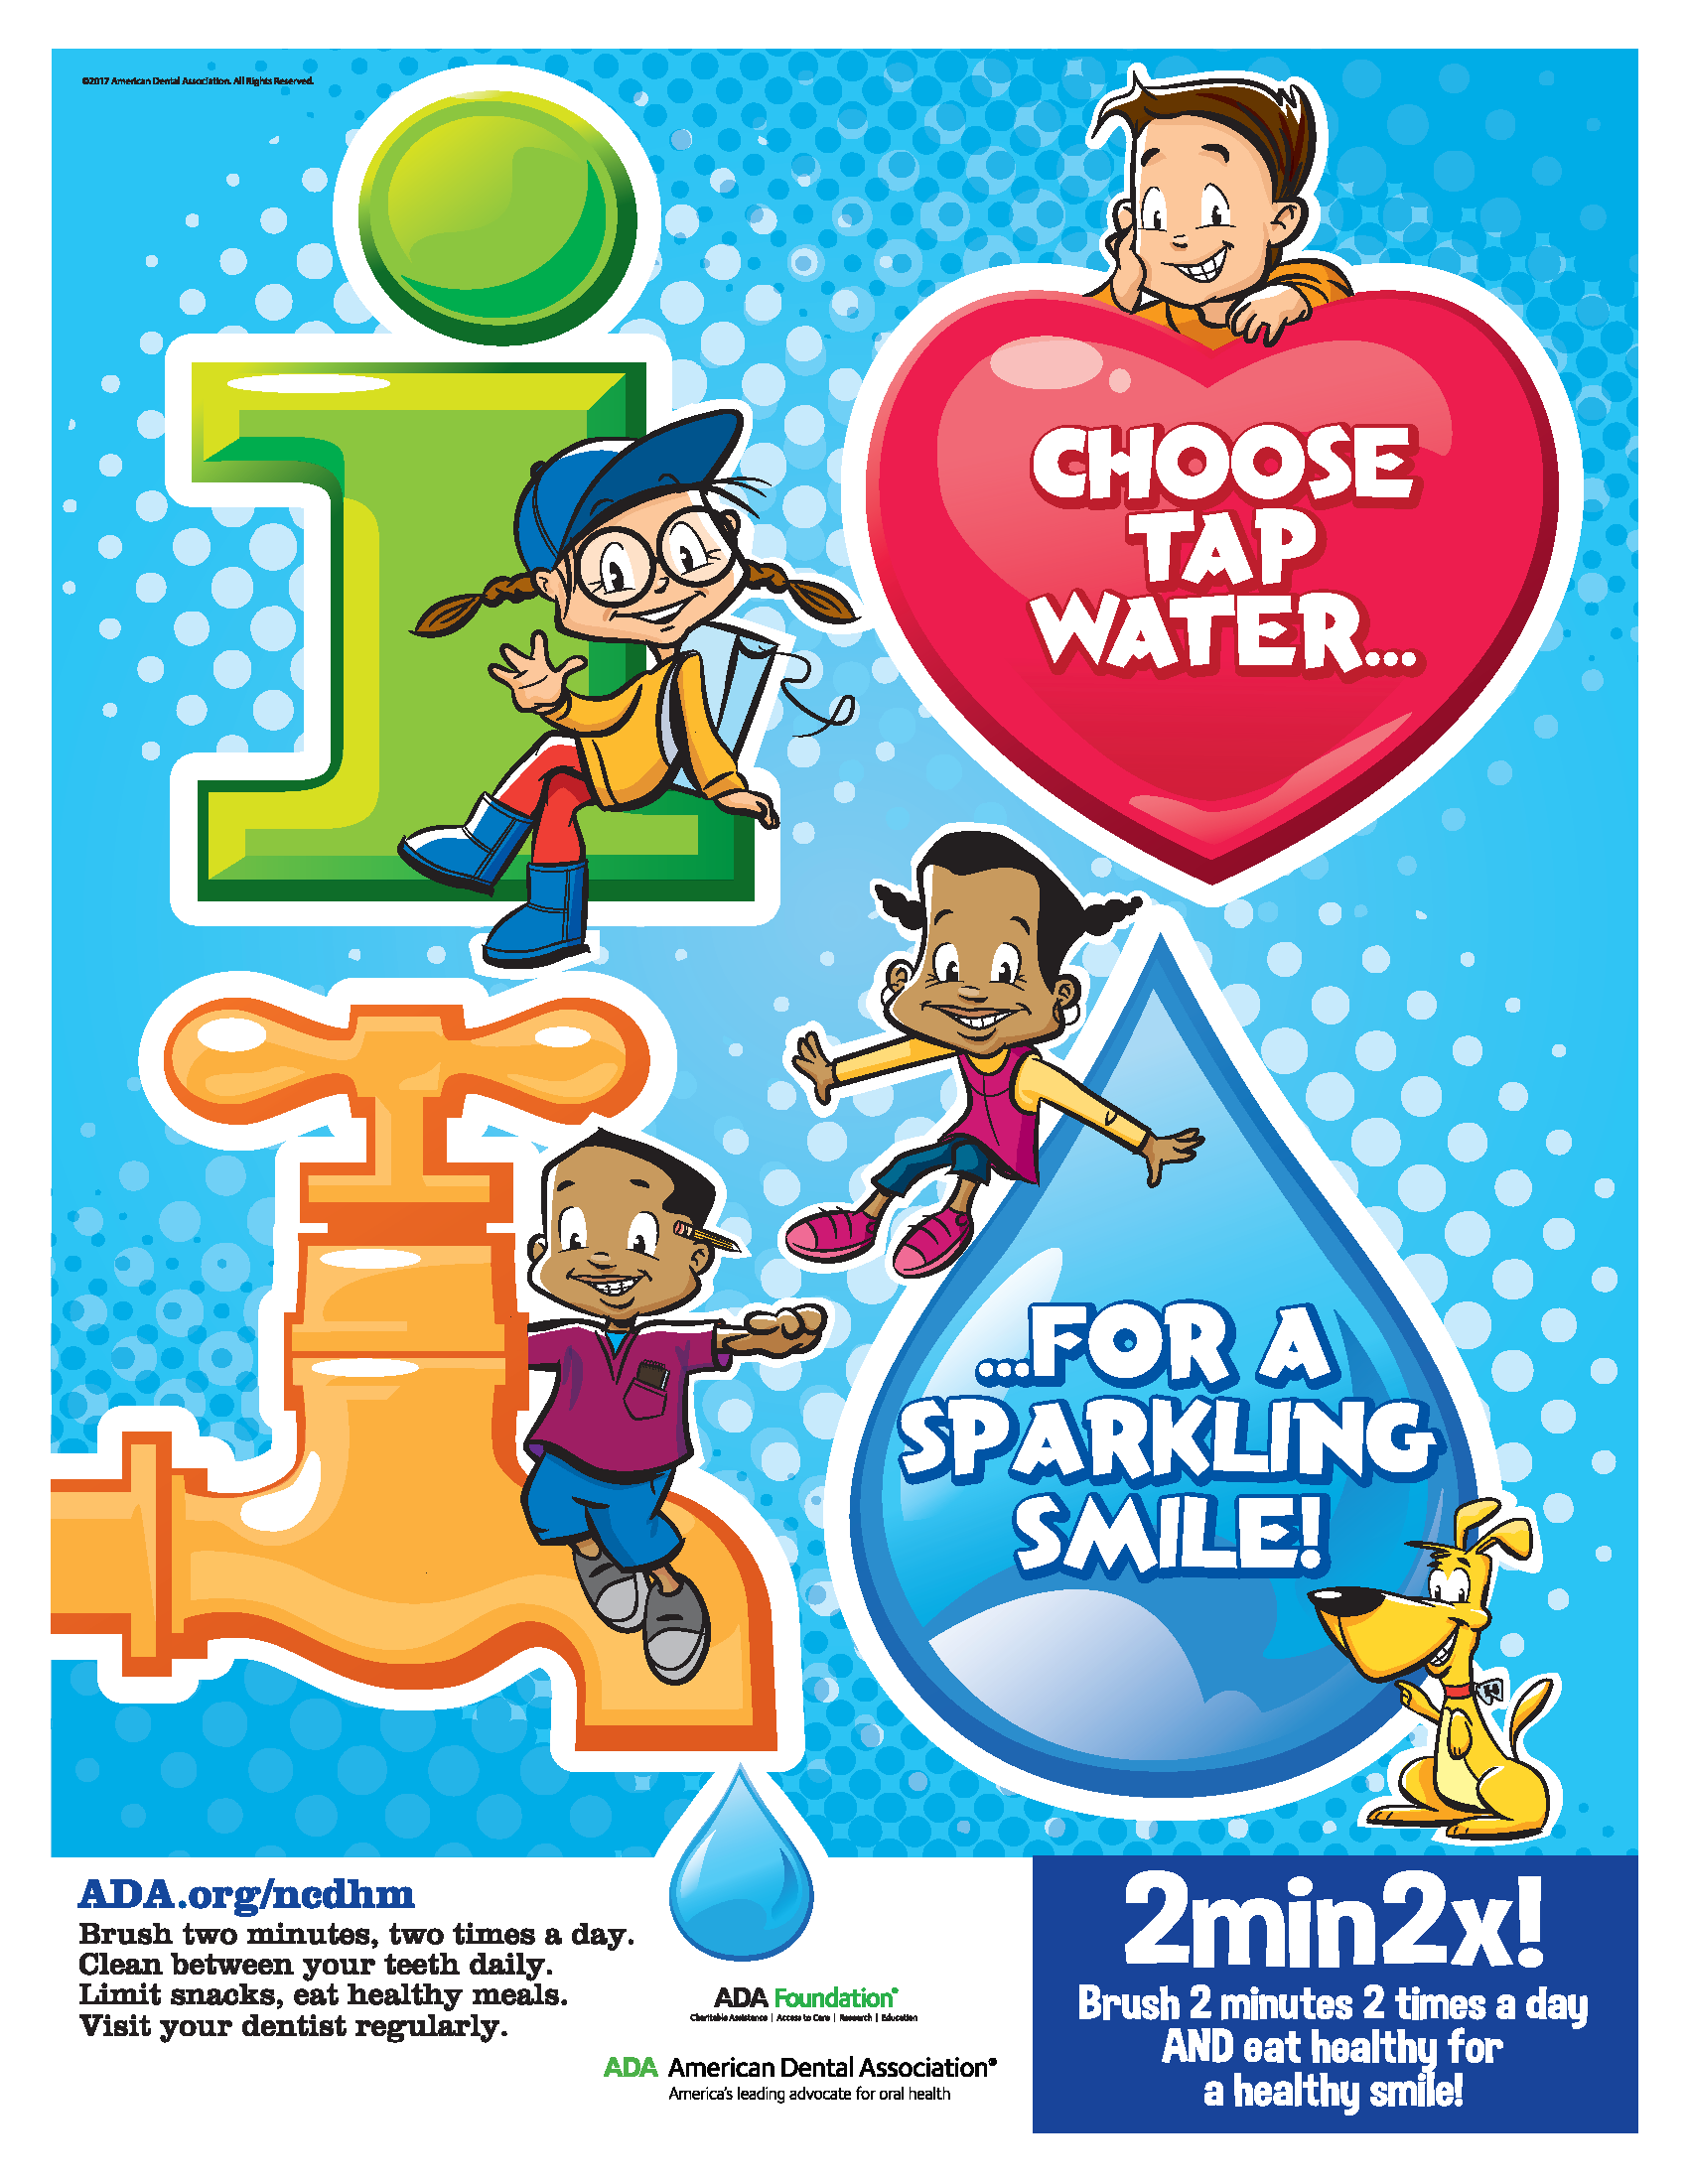 Brush Your Teeth With Fluoride Toothpaste And Clean Between For A Healthy Smile Is The Theme Of 2018 Campaign